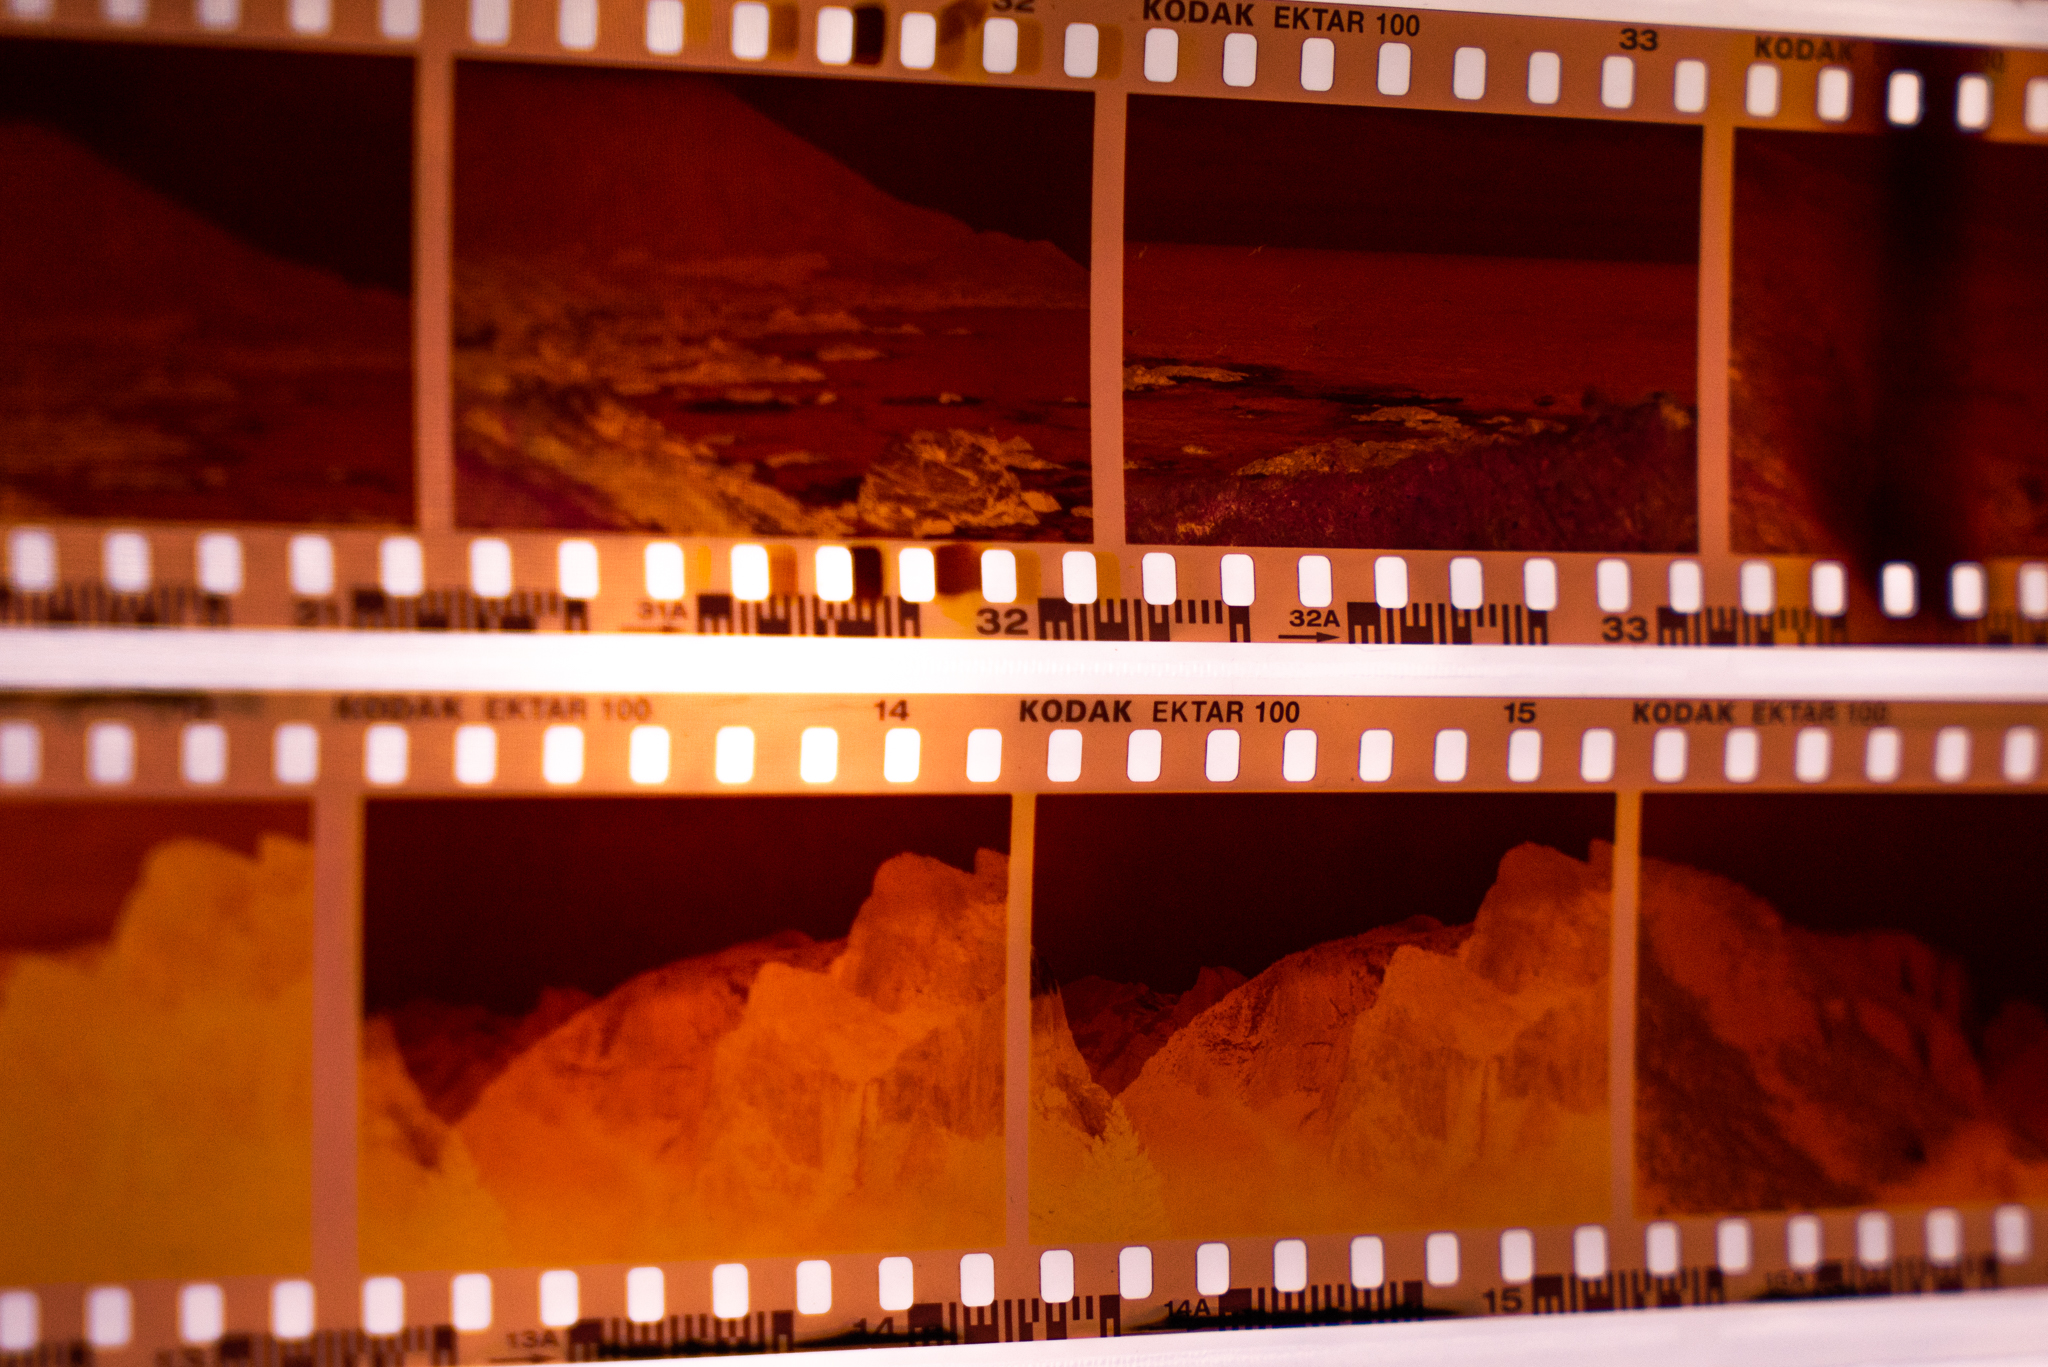 Ultimate Guide to Developing Your Film at Home